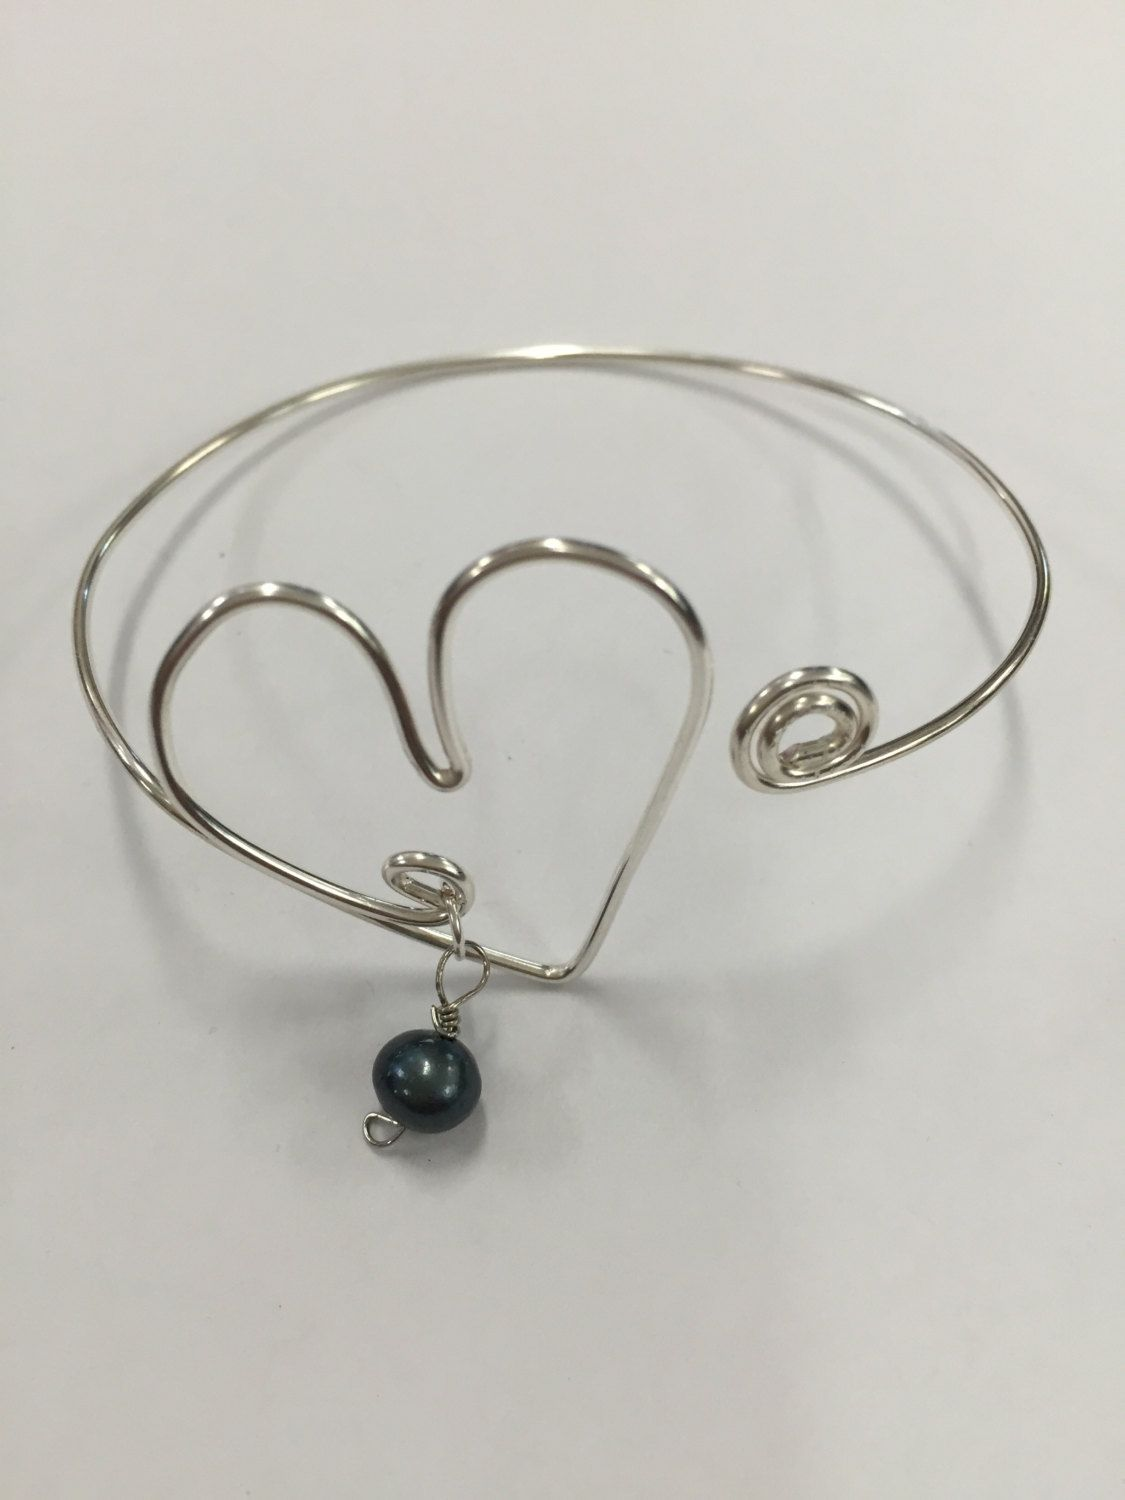 Silver Wire Heart Fresh Water Pearl Bangle Bracelet by GiftsbyKarenM on Etsy